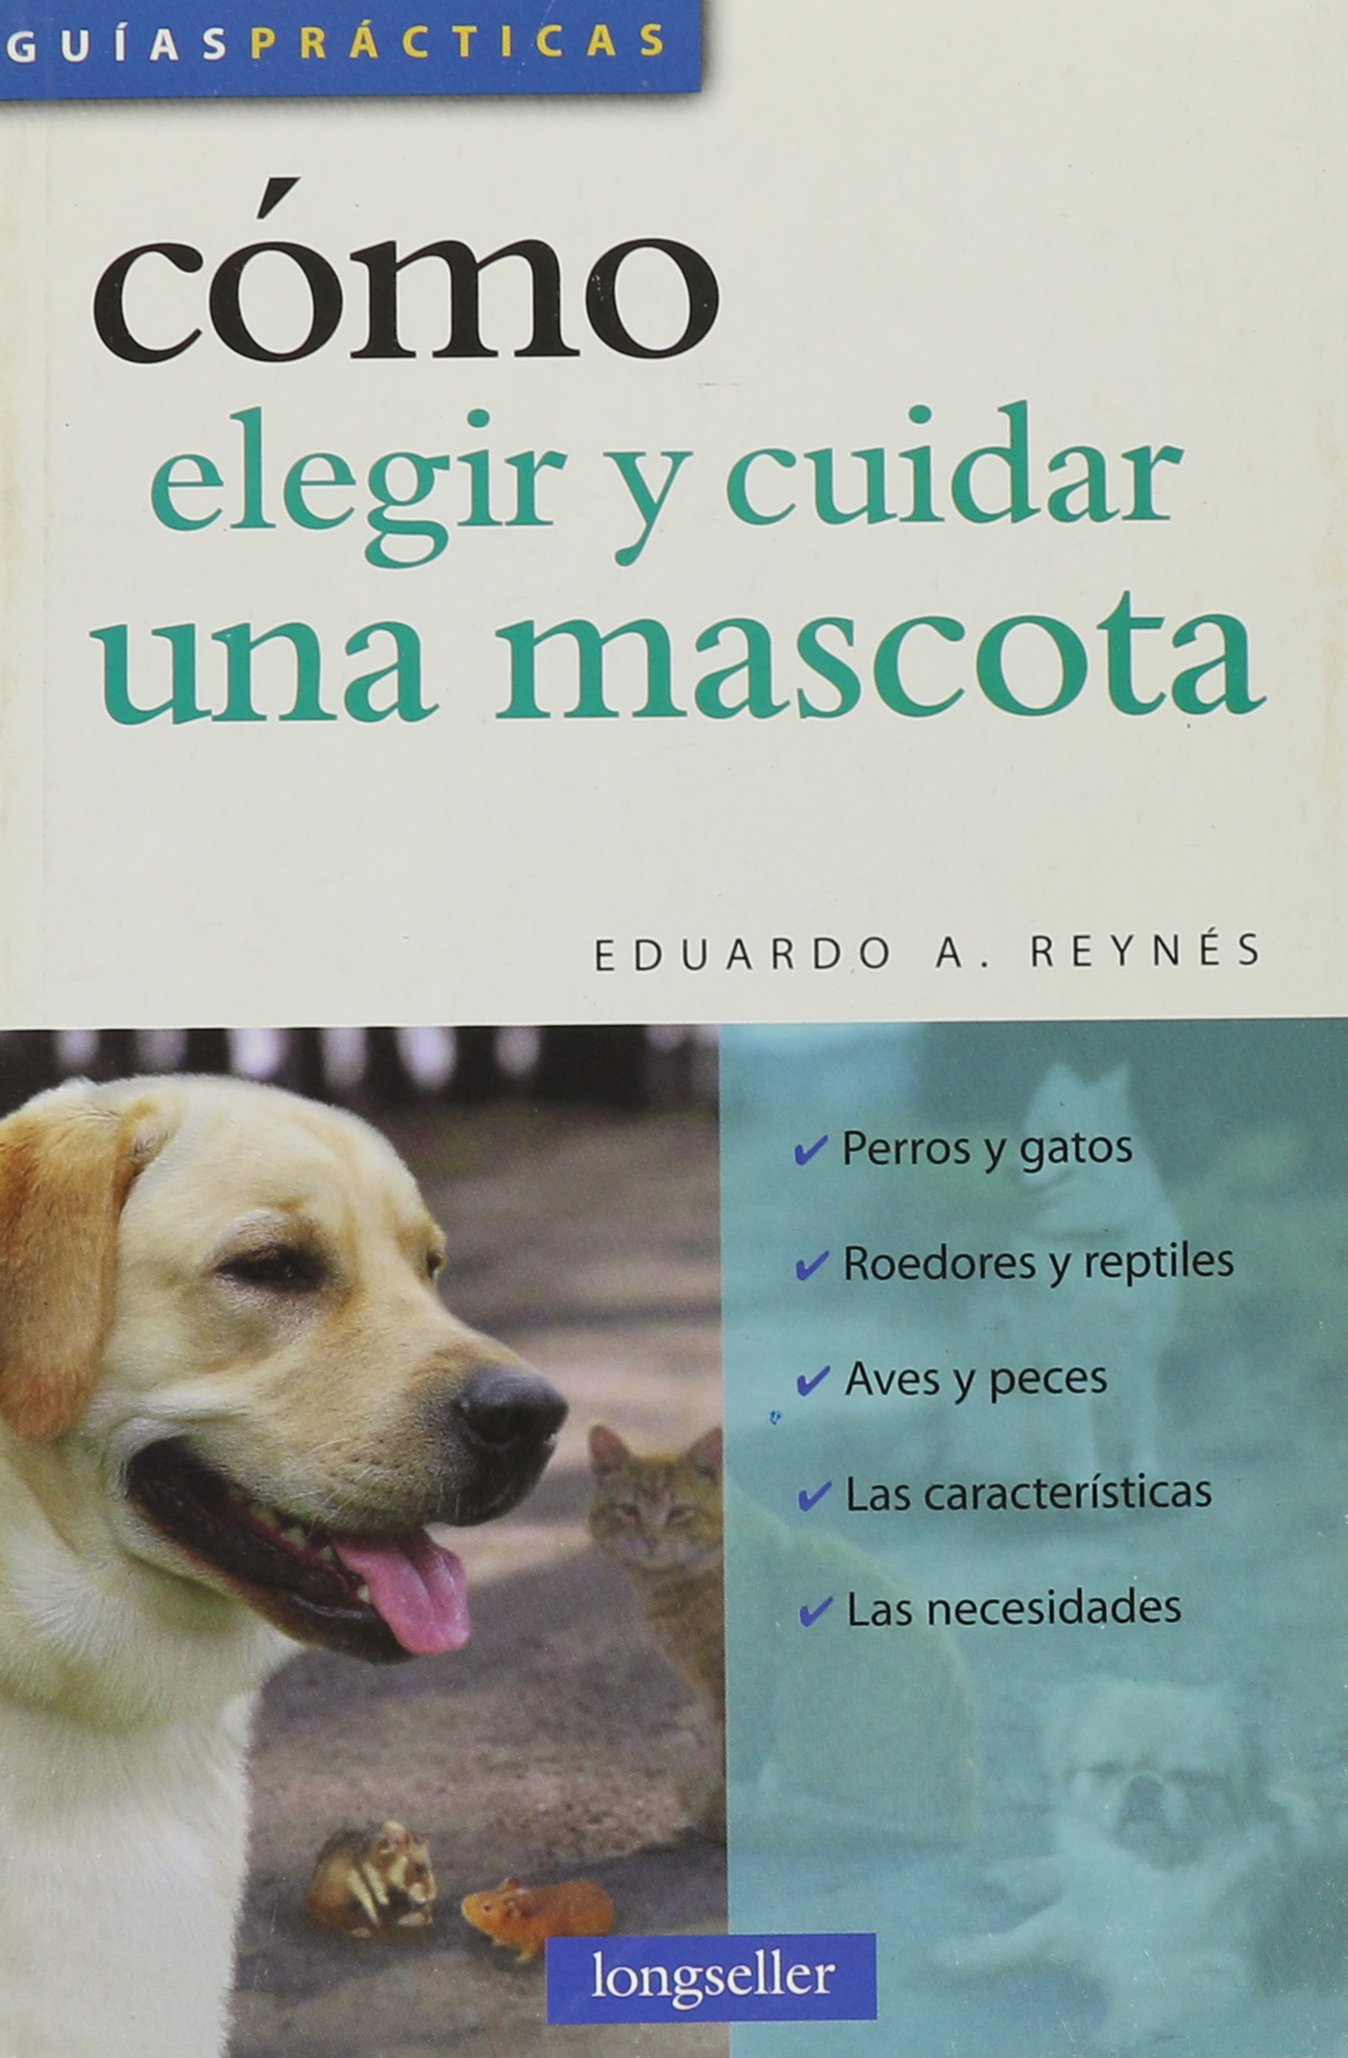 Como elegir y cuidar una mascota / How to Choose and Care for a Pet (Guias Practicas / Practical Guides) (Spanish Edition) (Spanish) Paperback – March 3, ...